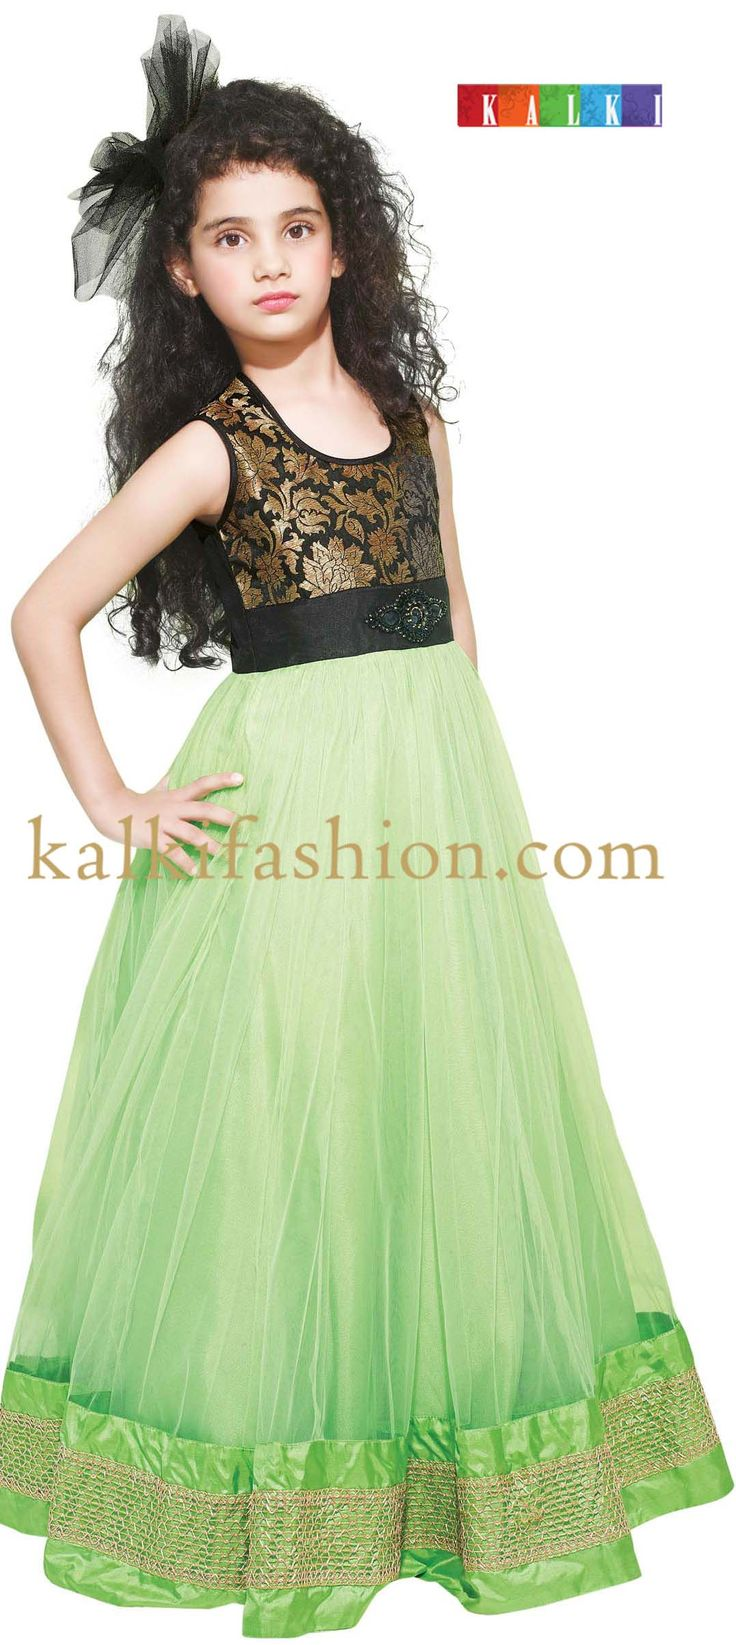 Buy it now http://www.kalkifashion.com/green-gown-with-embroidered-brooch.html Green gown with embroidered brooch